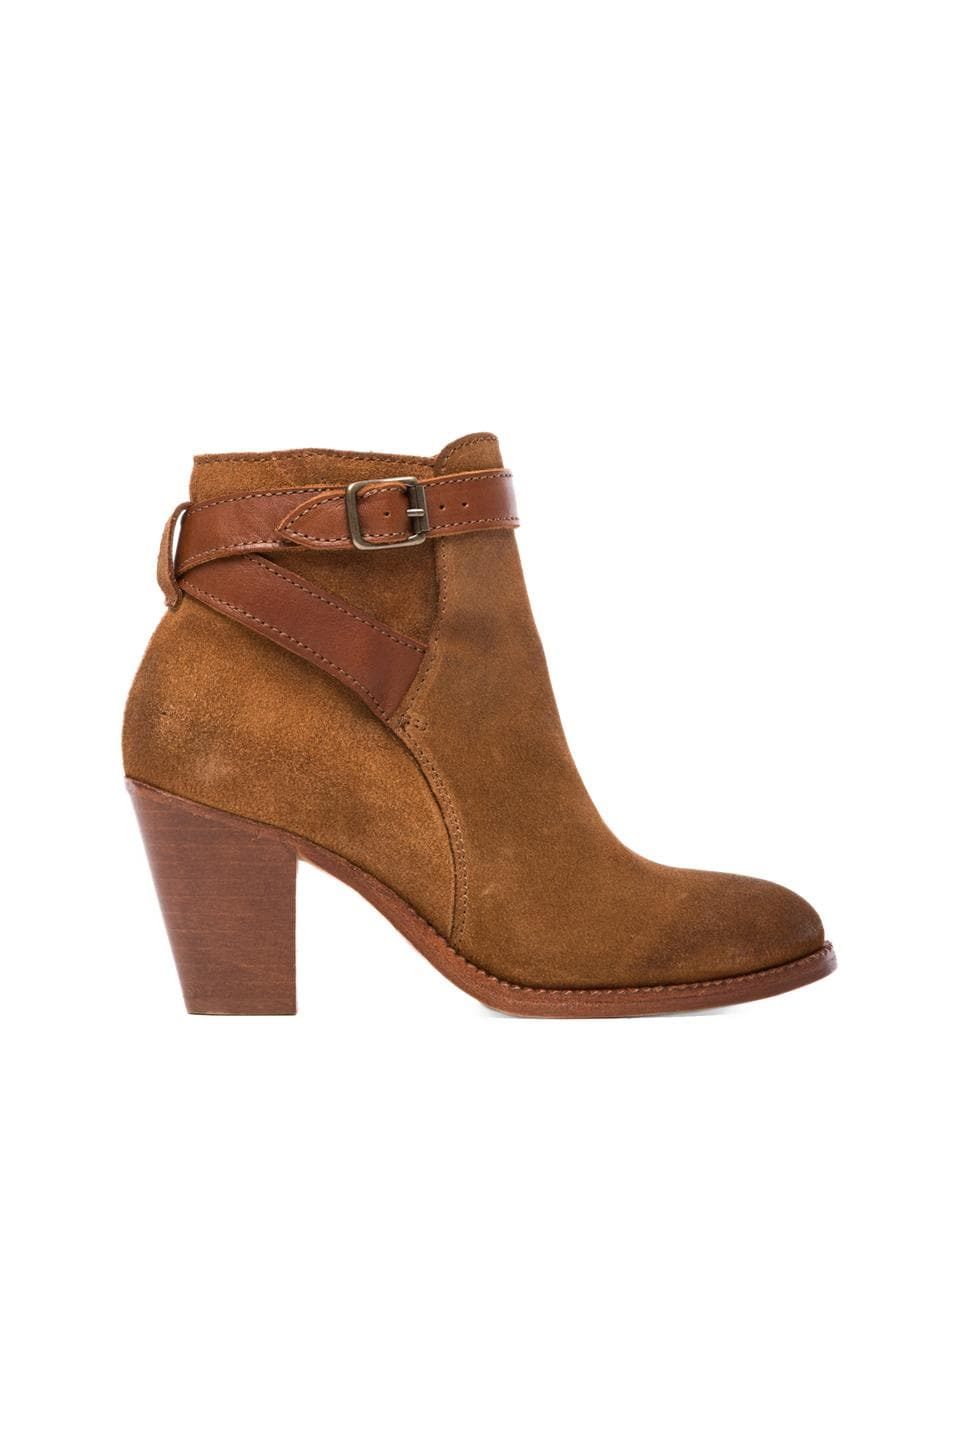 H by Hudson Lewknow Boot in Suede Tan